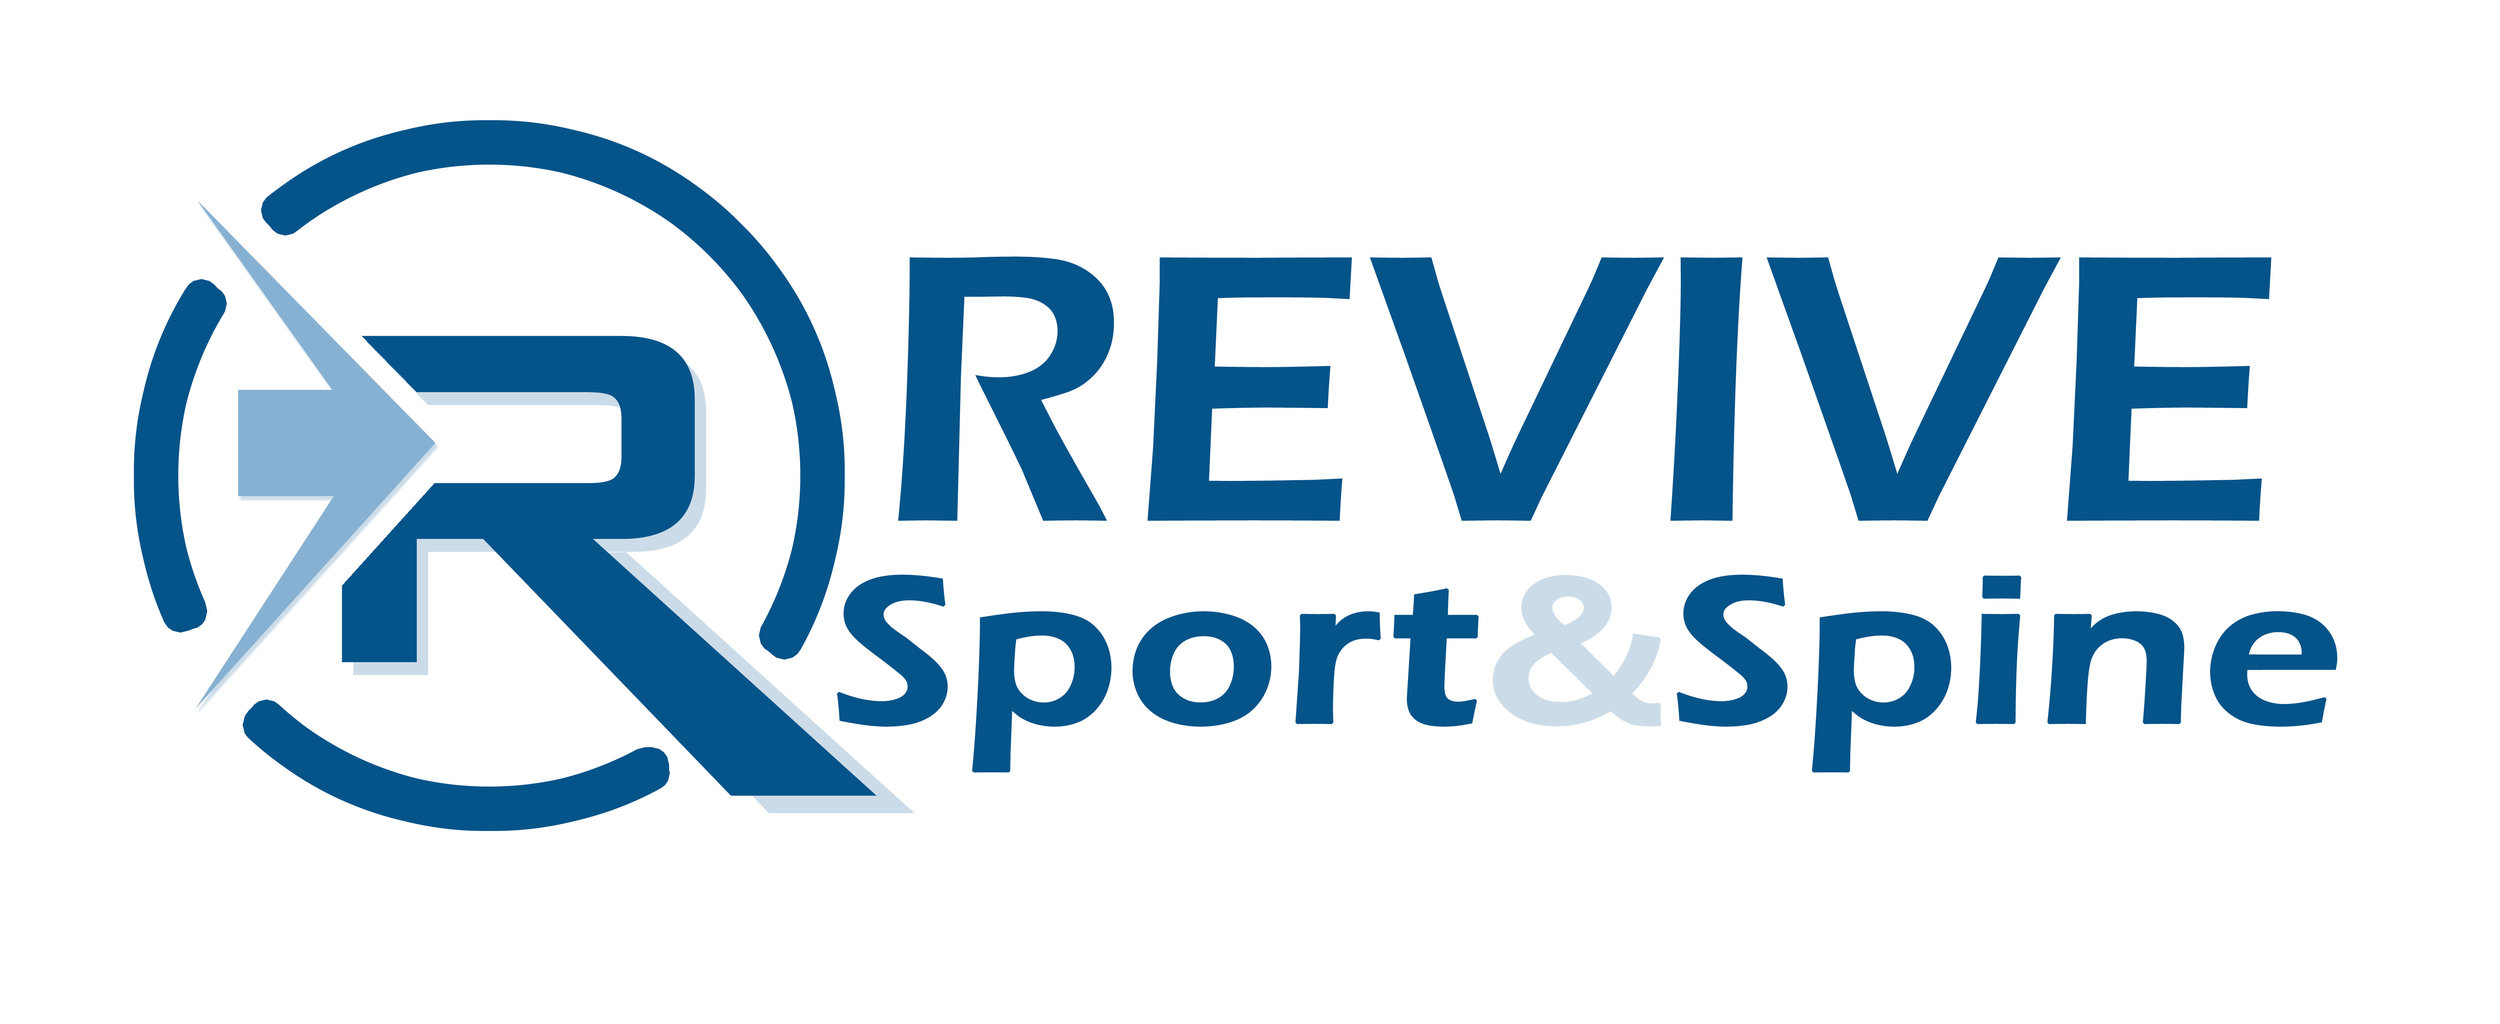 Revive-Sport-Spine.jpg